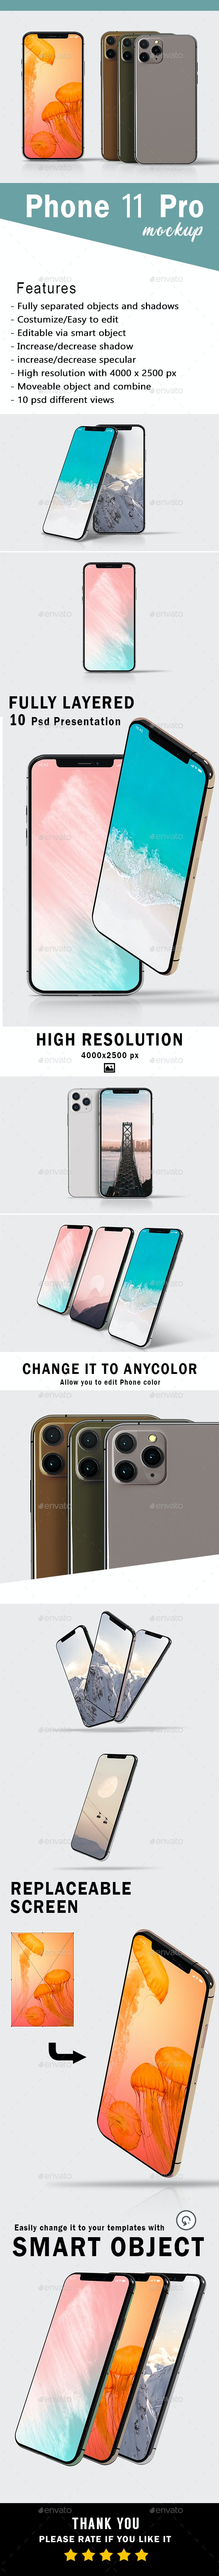 Phone 11 Pro Mockup - Mobile Displays